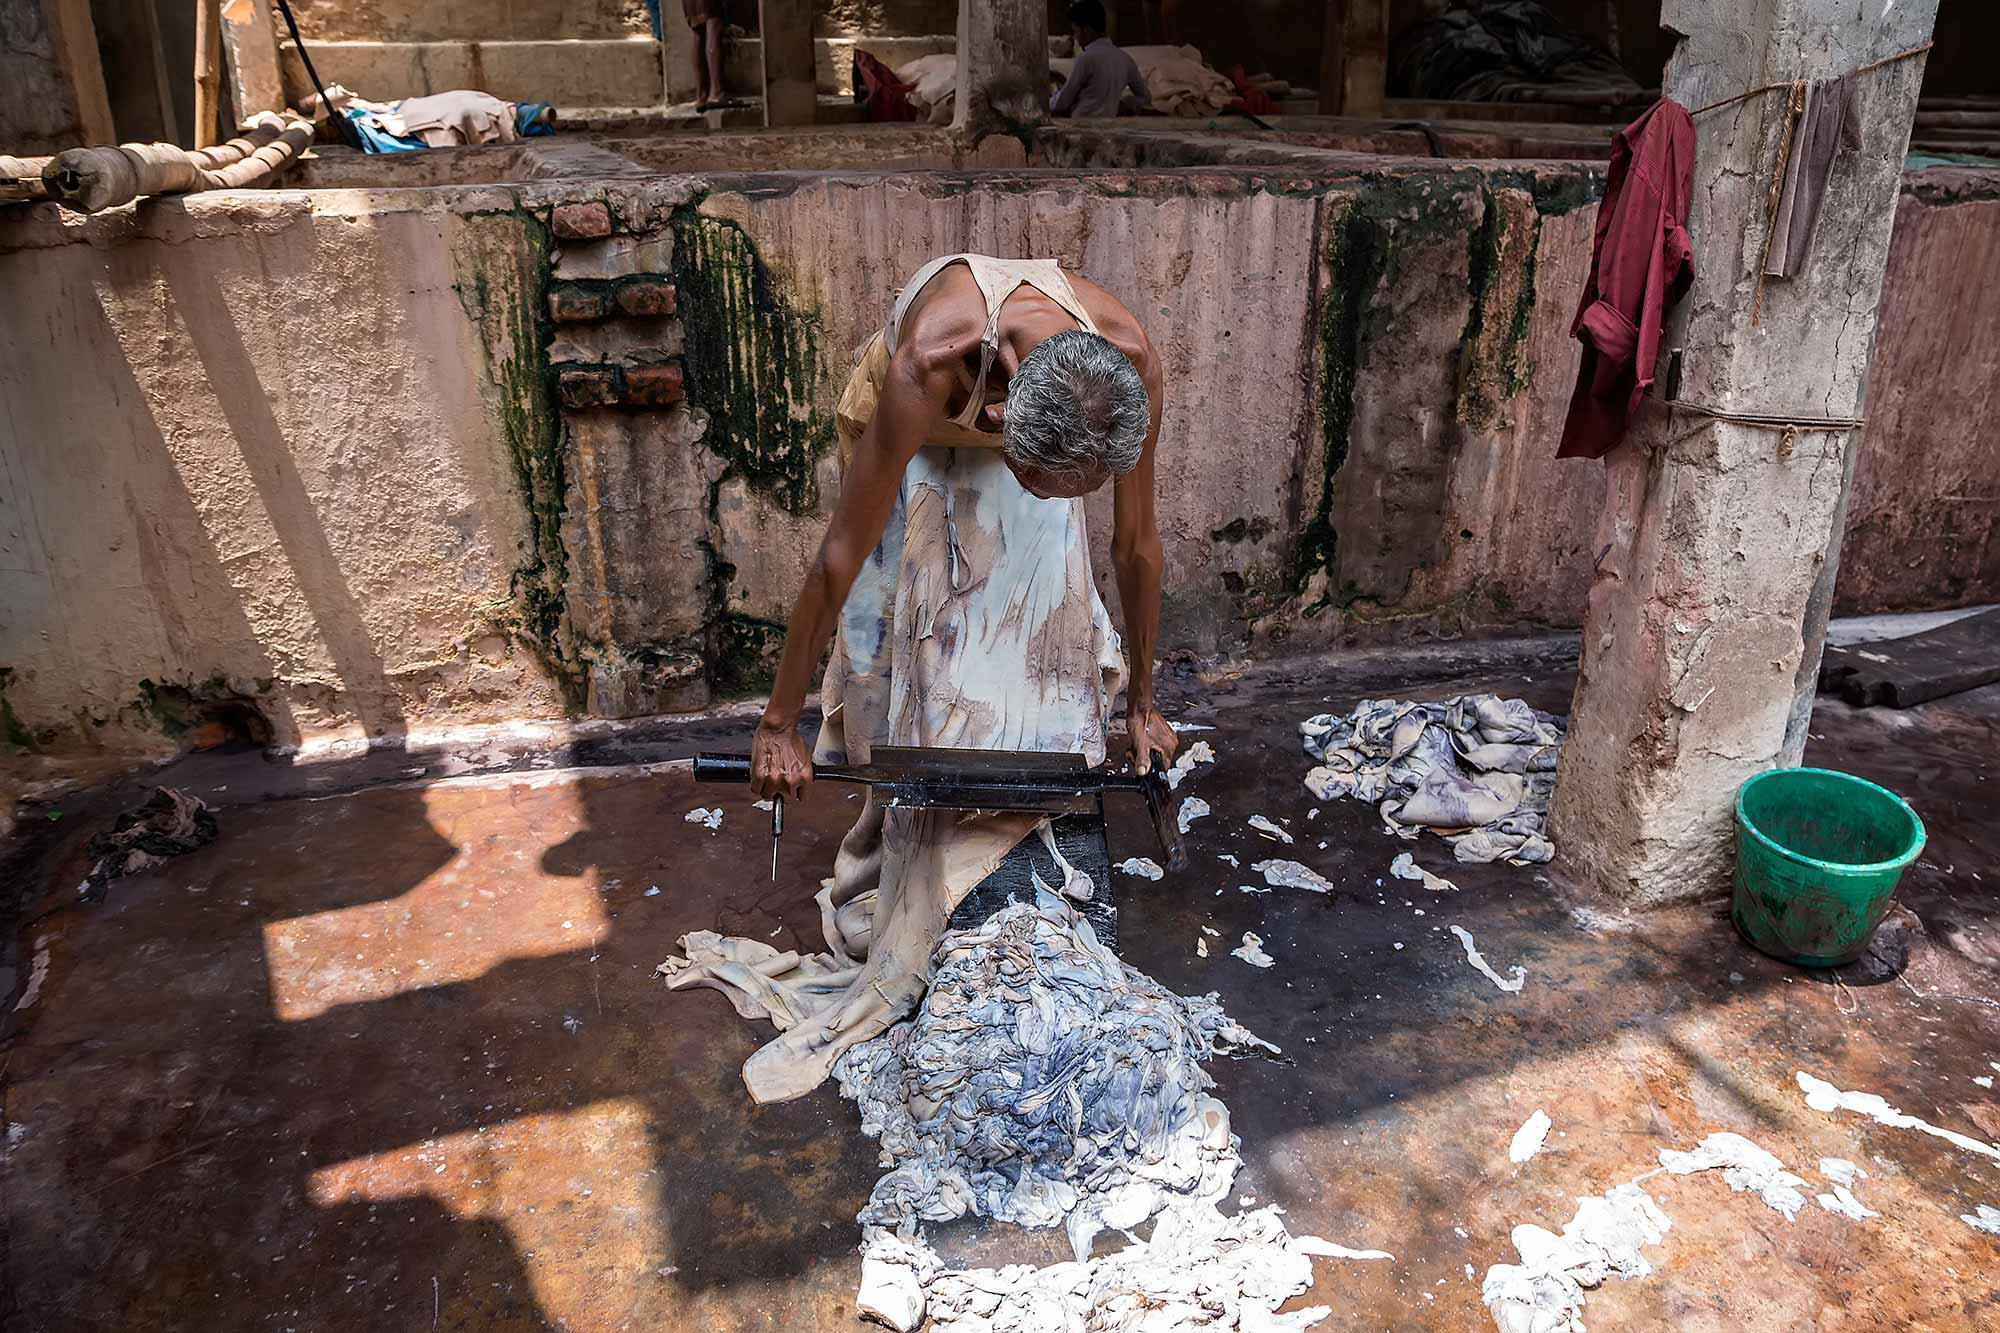 Man working in a leather tannery in Dhaka, Bangladesh. © Ulli Maier & Nisa Maier